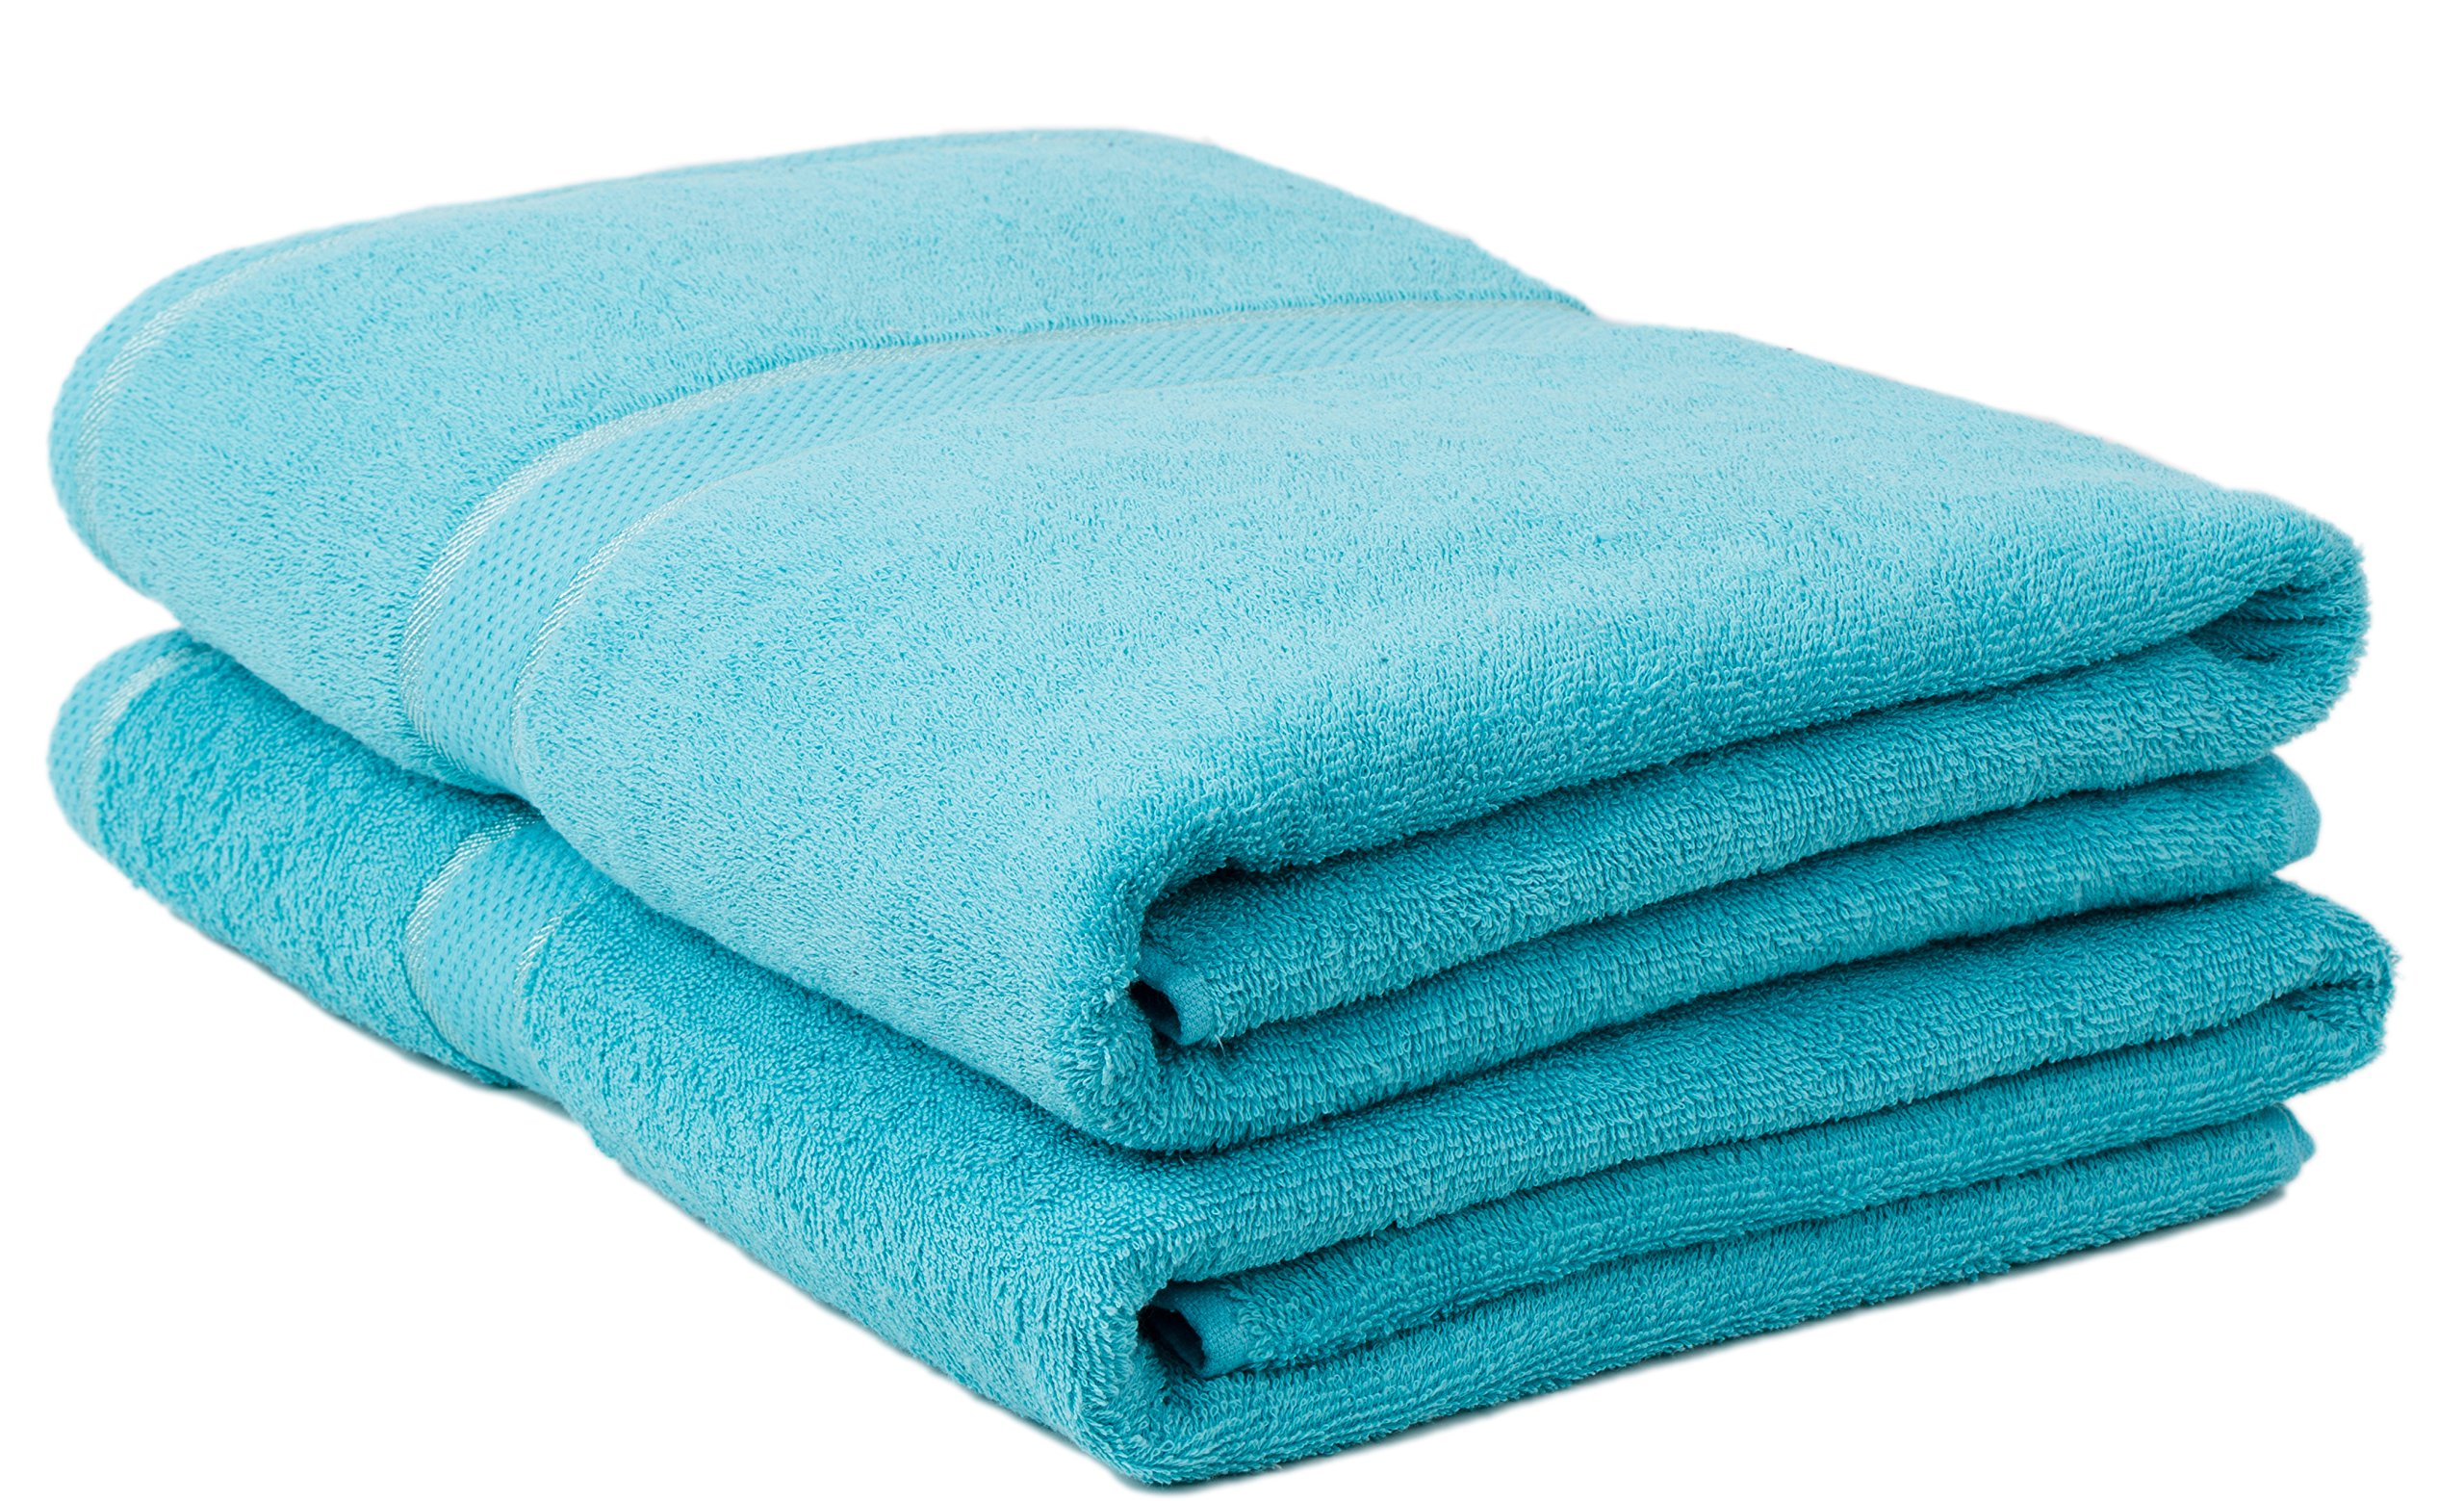 Classic Collection Premium 100% Organic Cotton Oversized Extra Large Bath Towels 34'' X 60'' Natural, Durable, Ultra-Absorbent,Luxurious Rayon Trim,Embroidery Decorative Set(2 Pack,Blue)